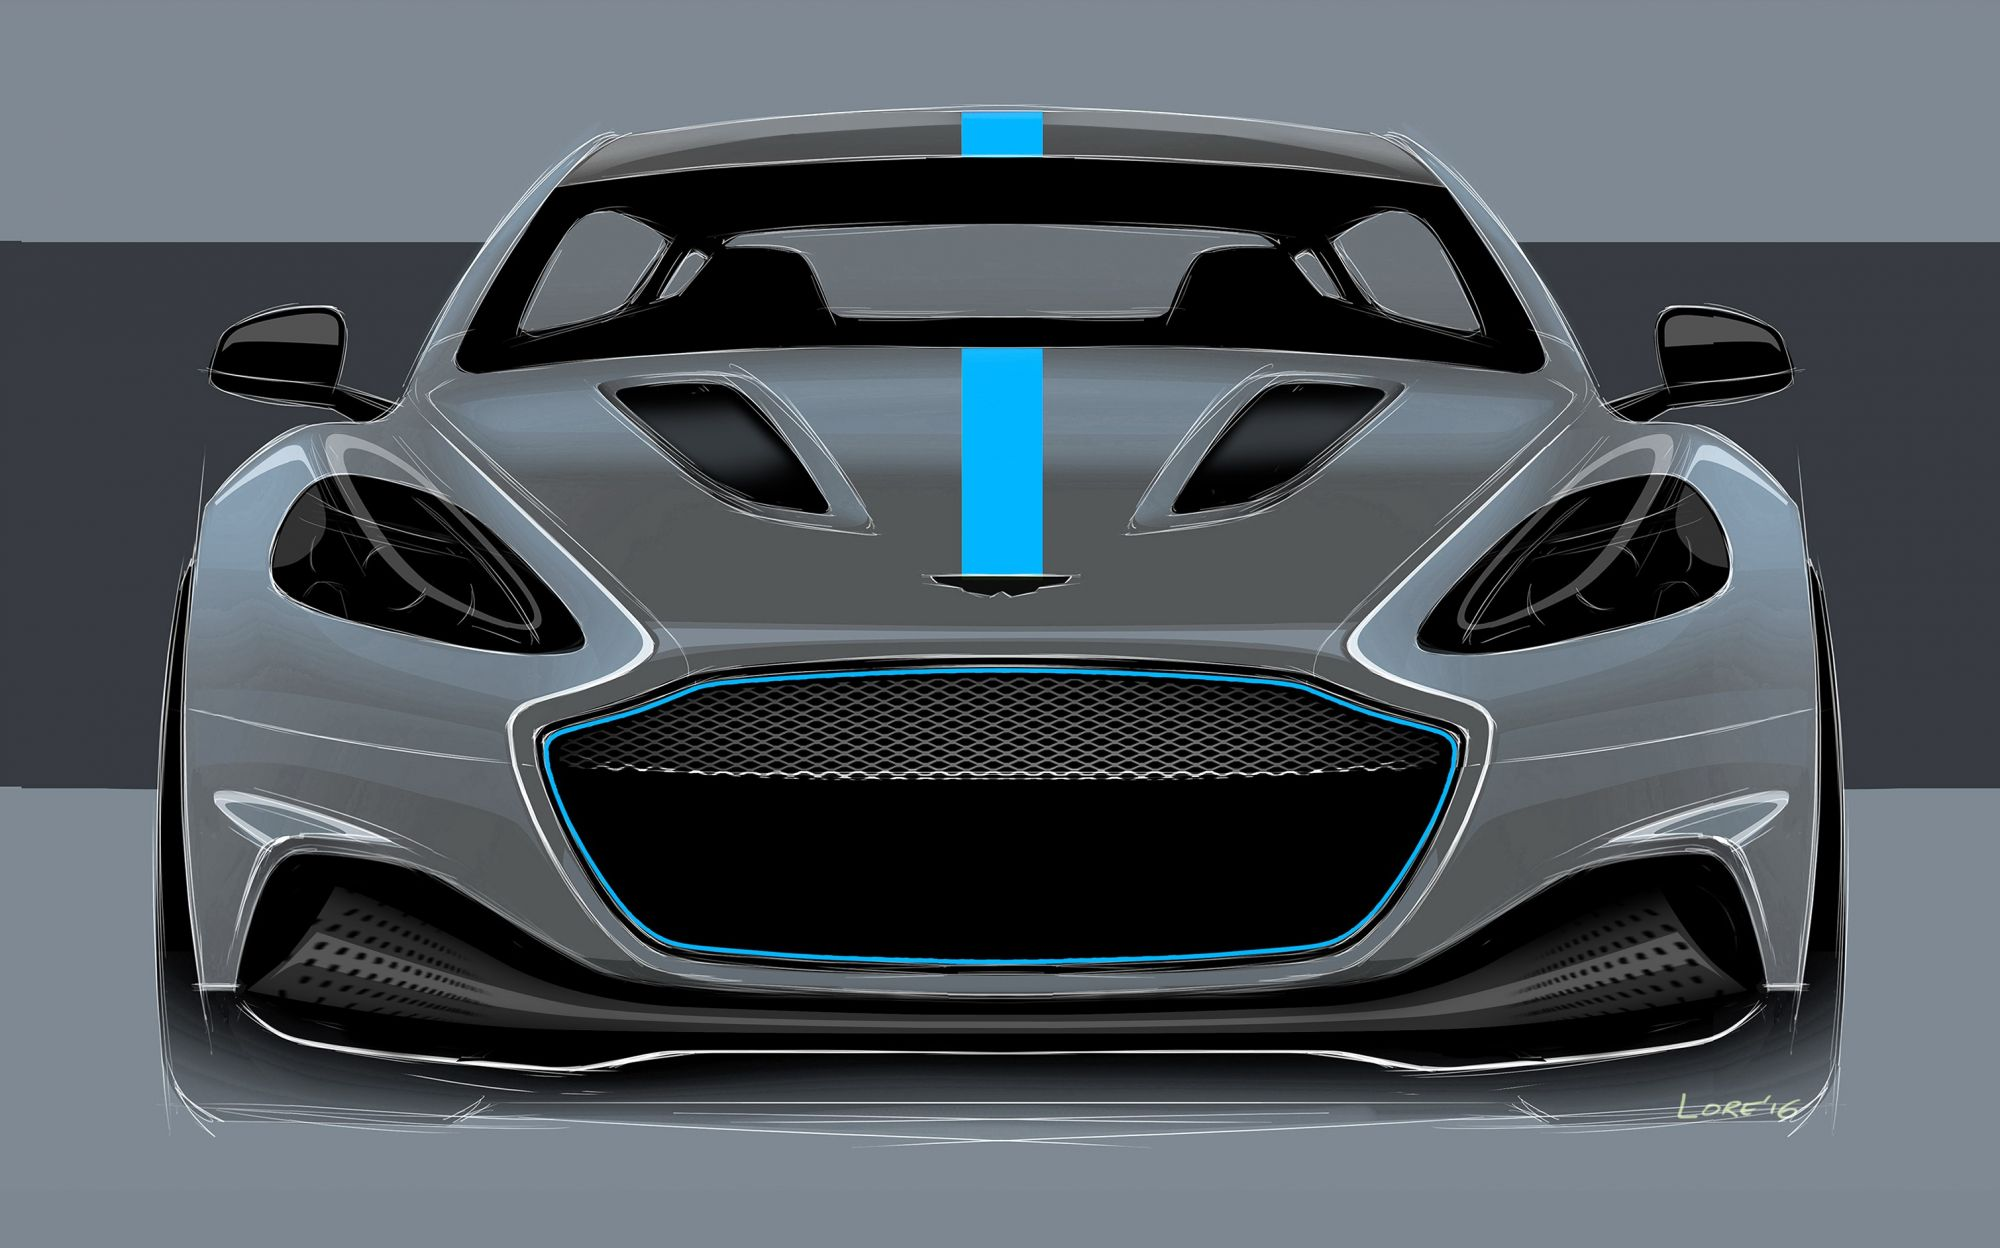 Aston Martin Goes Green With Its First All-Electric RapidE